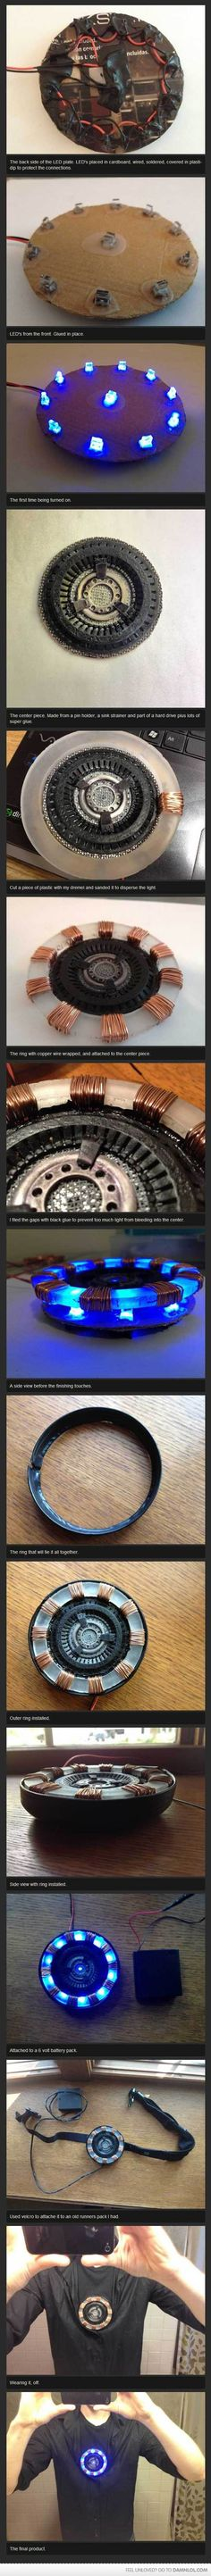 Tony Stark's miniaturized Arc Reactor tutorial